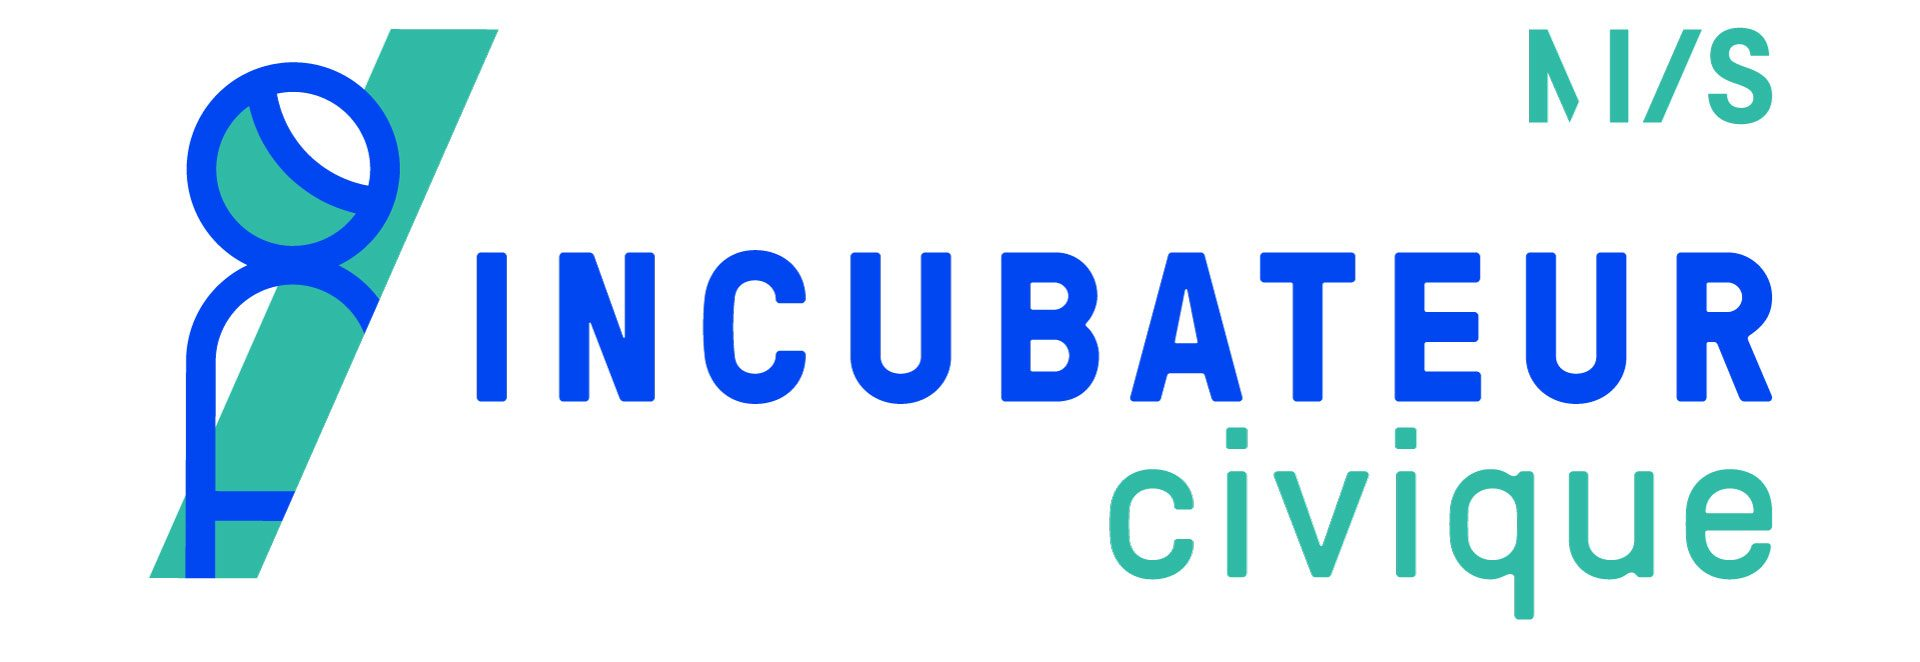 Incubateur civique de la Maison de l'innovation sociale